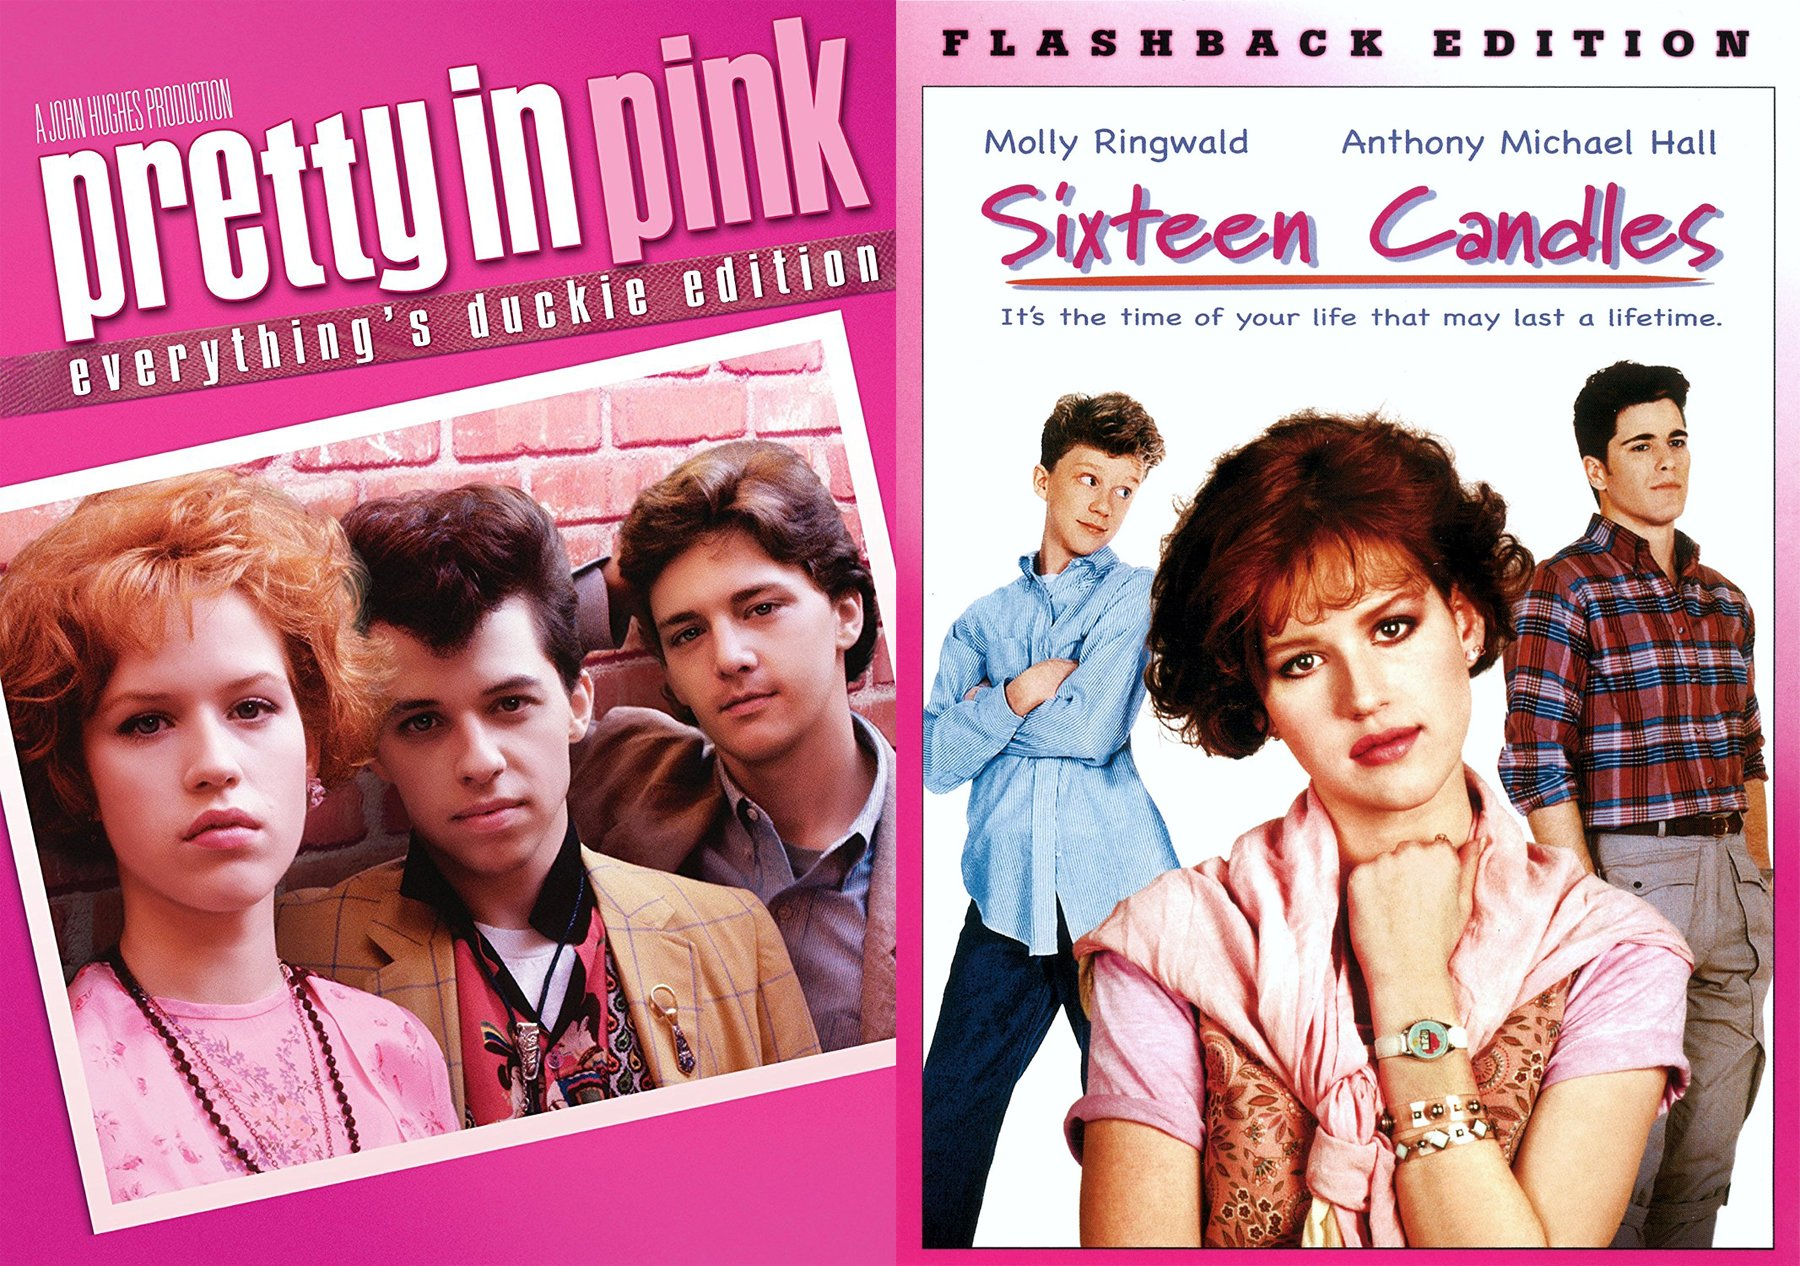 John Hughes Molly Ringwald 2-DVD Bundle - Sixteen Candles (Flashback Edition) & Pretty in Pink (Everything's Ducky Edition) by